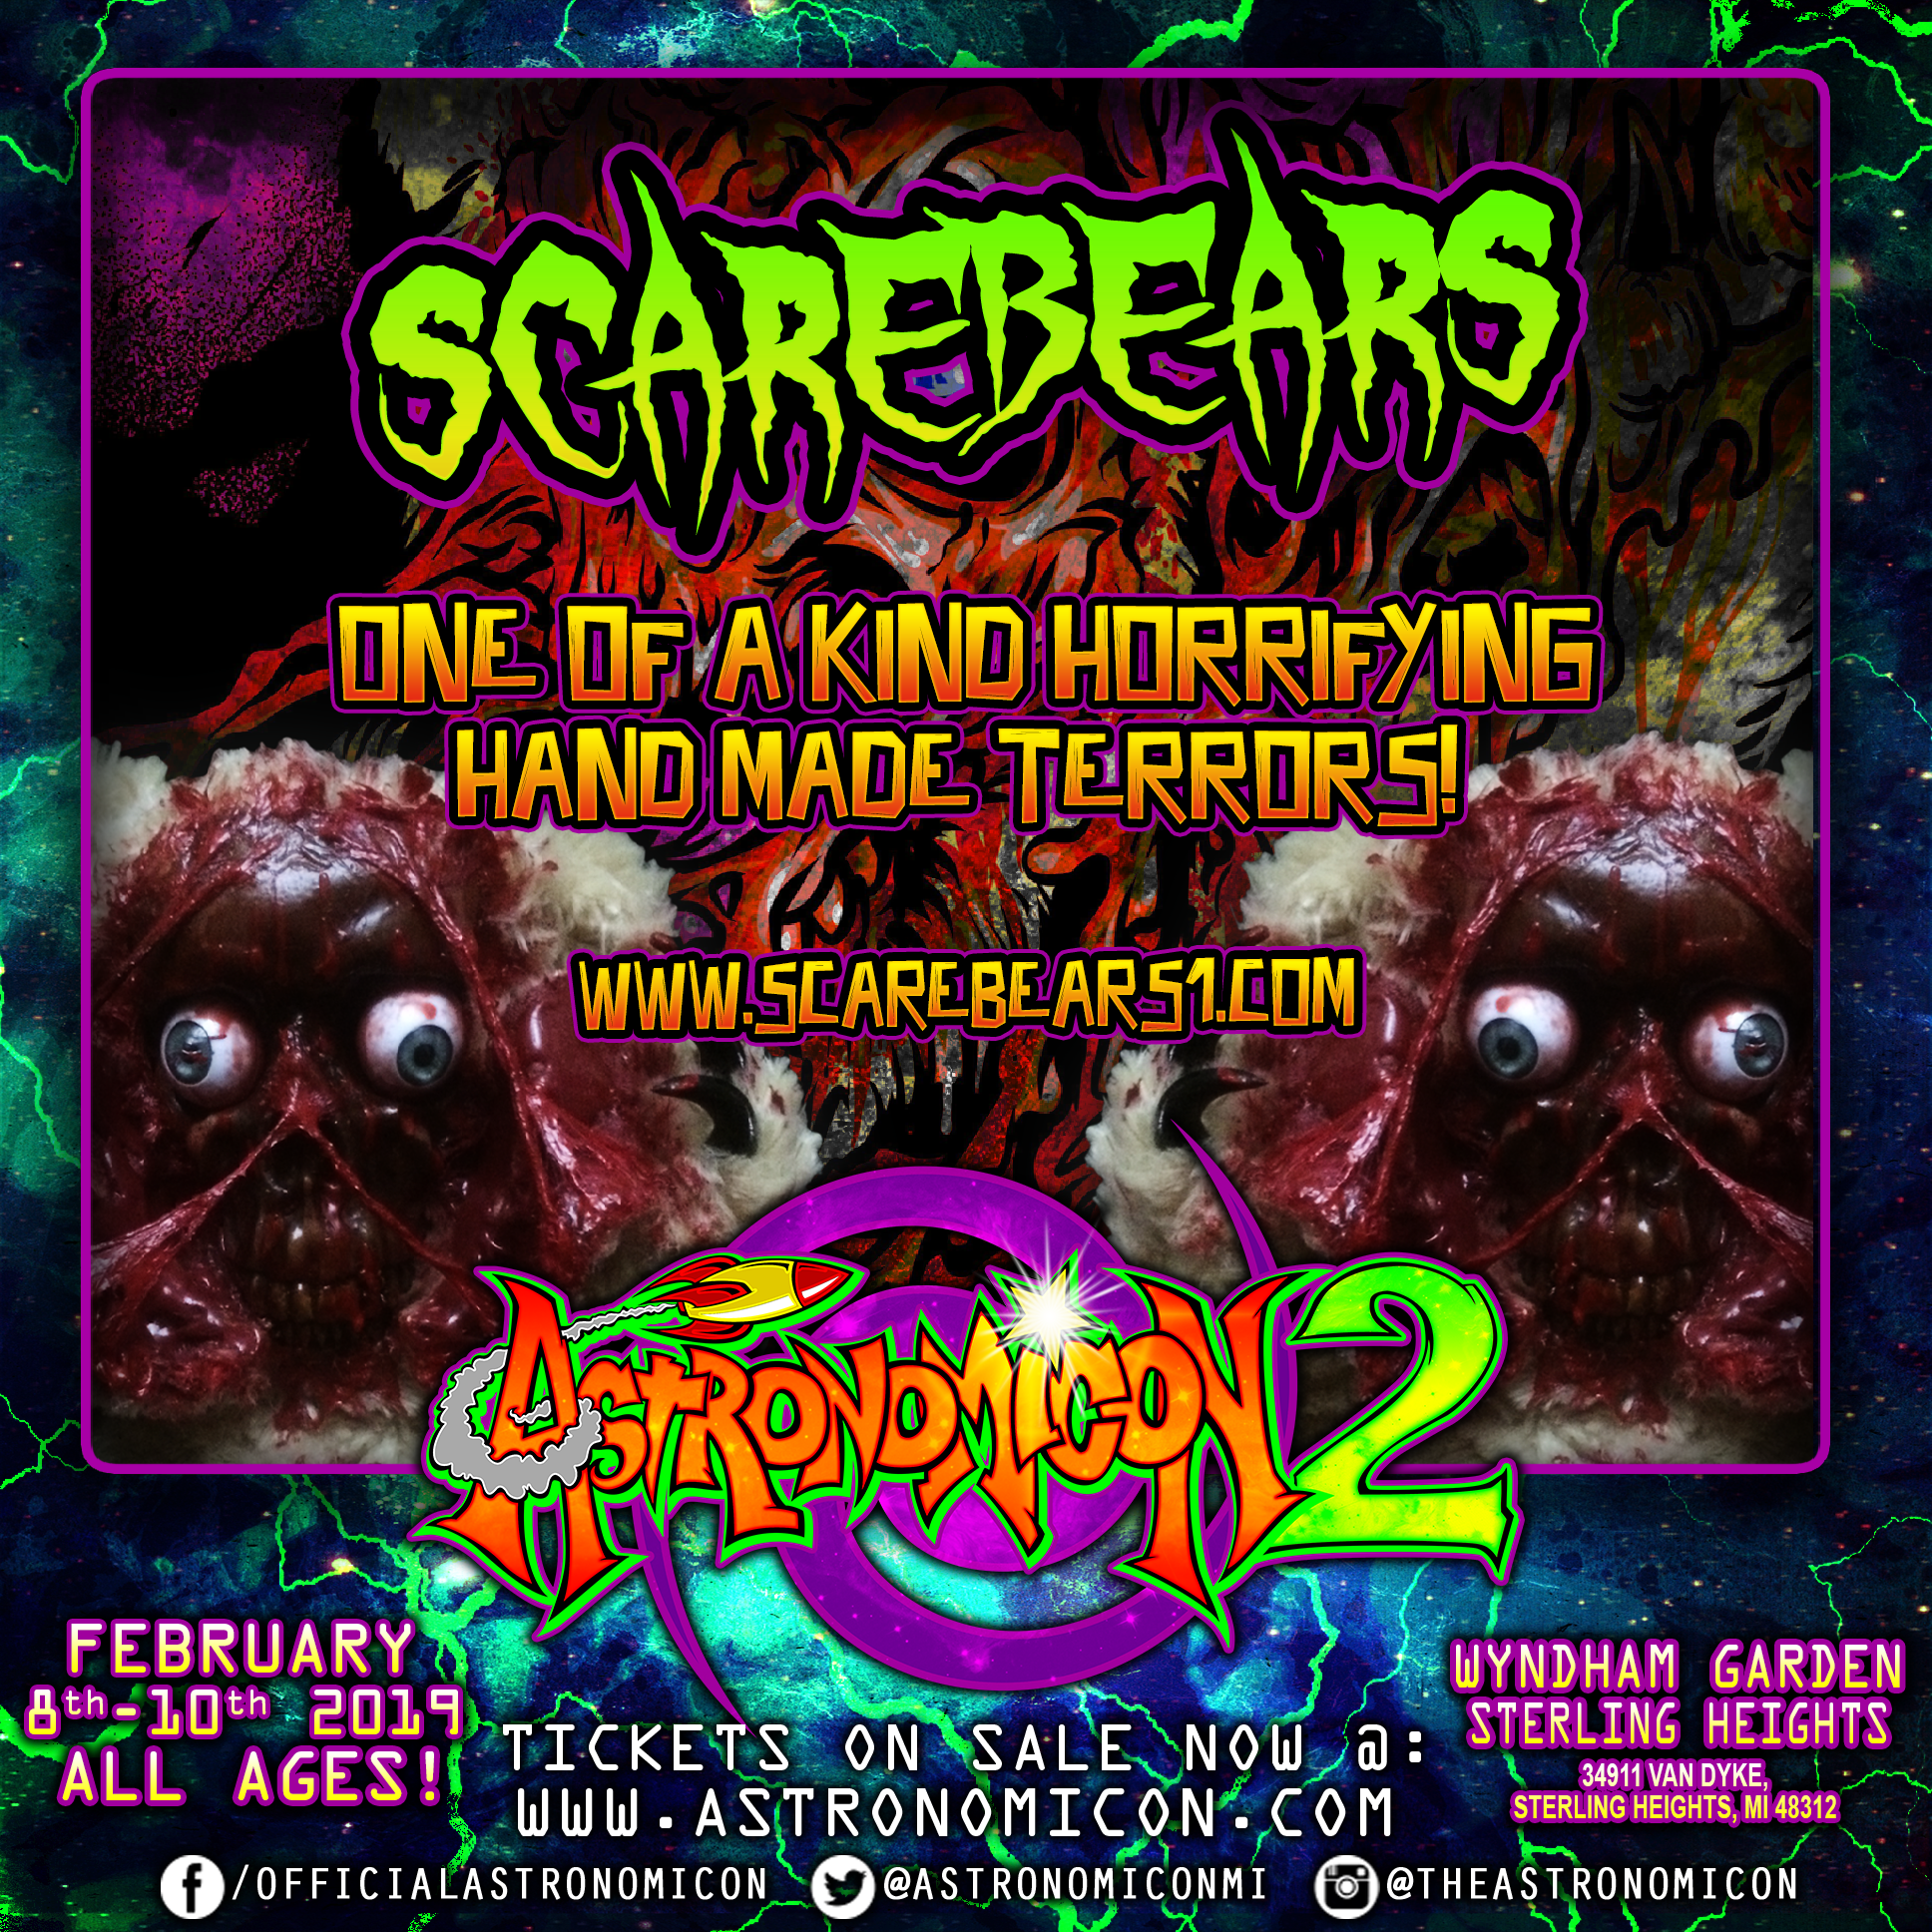 Astronomicon 2 Scare Bears IG Ad.png